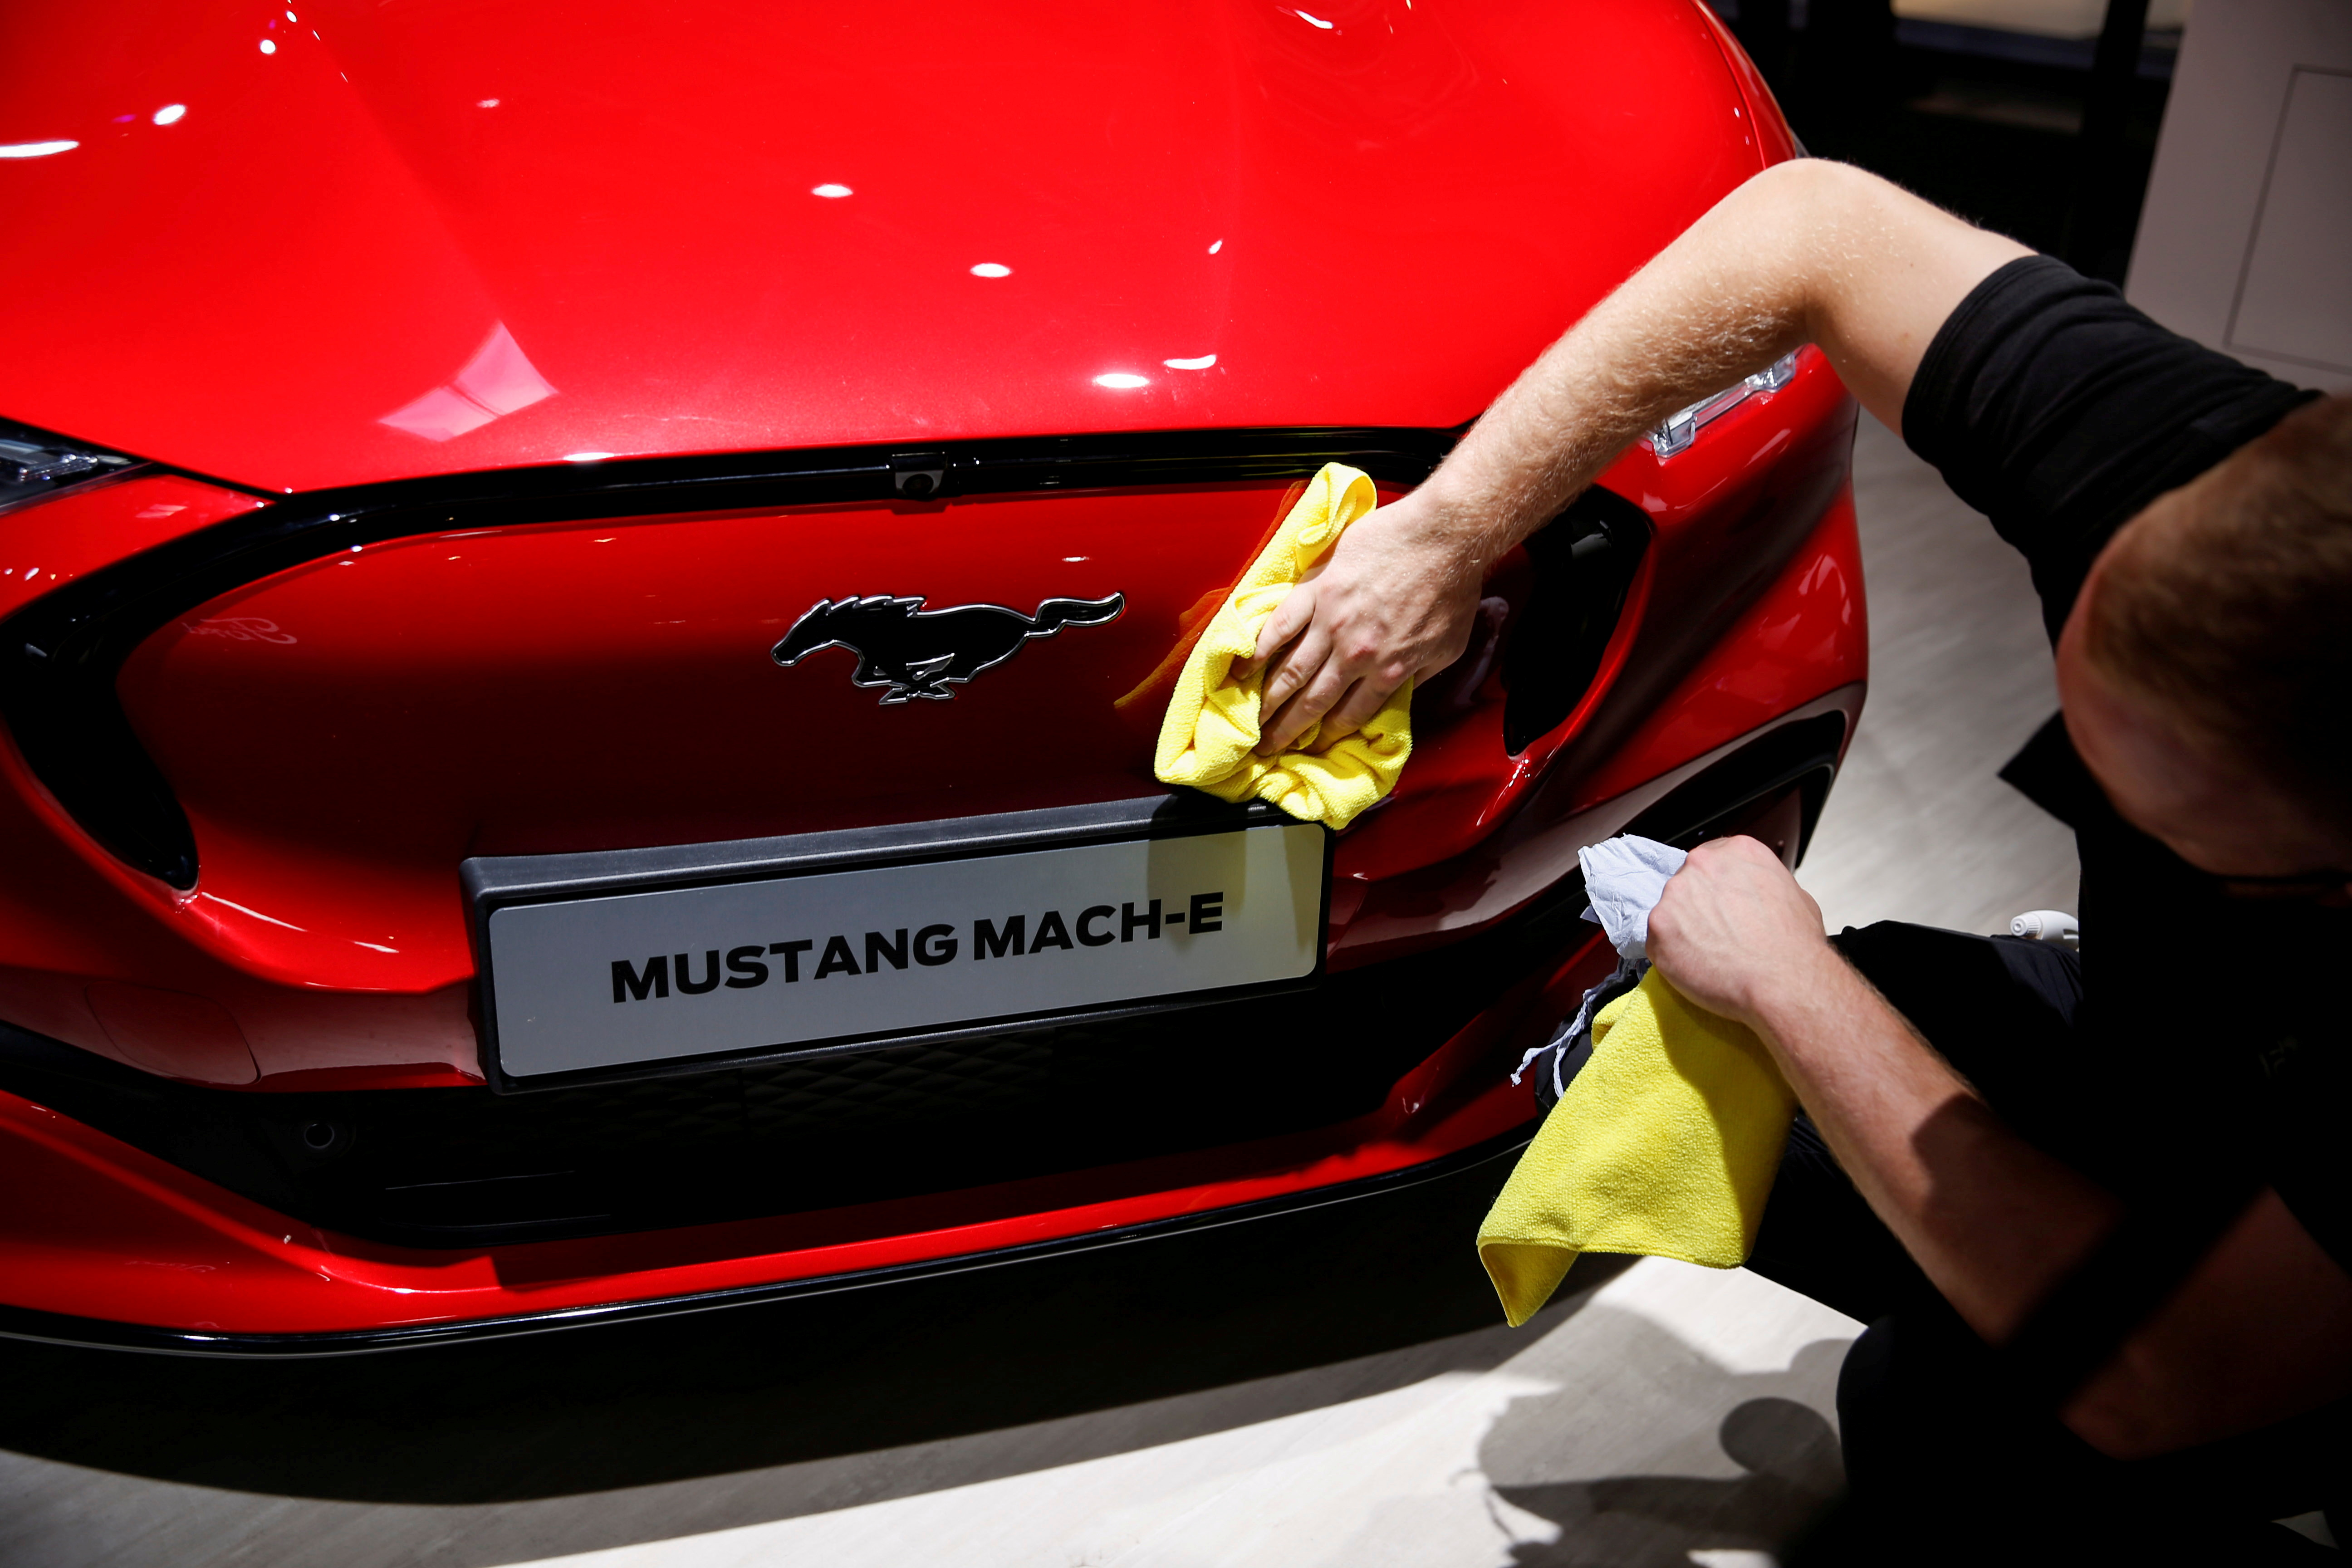 A worker prepares Ford Mustang Mach-E ahead of the Munich Motor Show IAA Mobility 2021 in Munich, Germany, September 6, 2021. REUTERS/Michaela Rehle